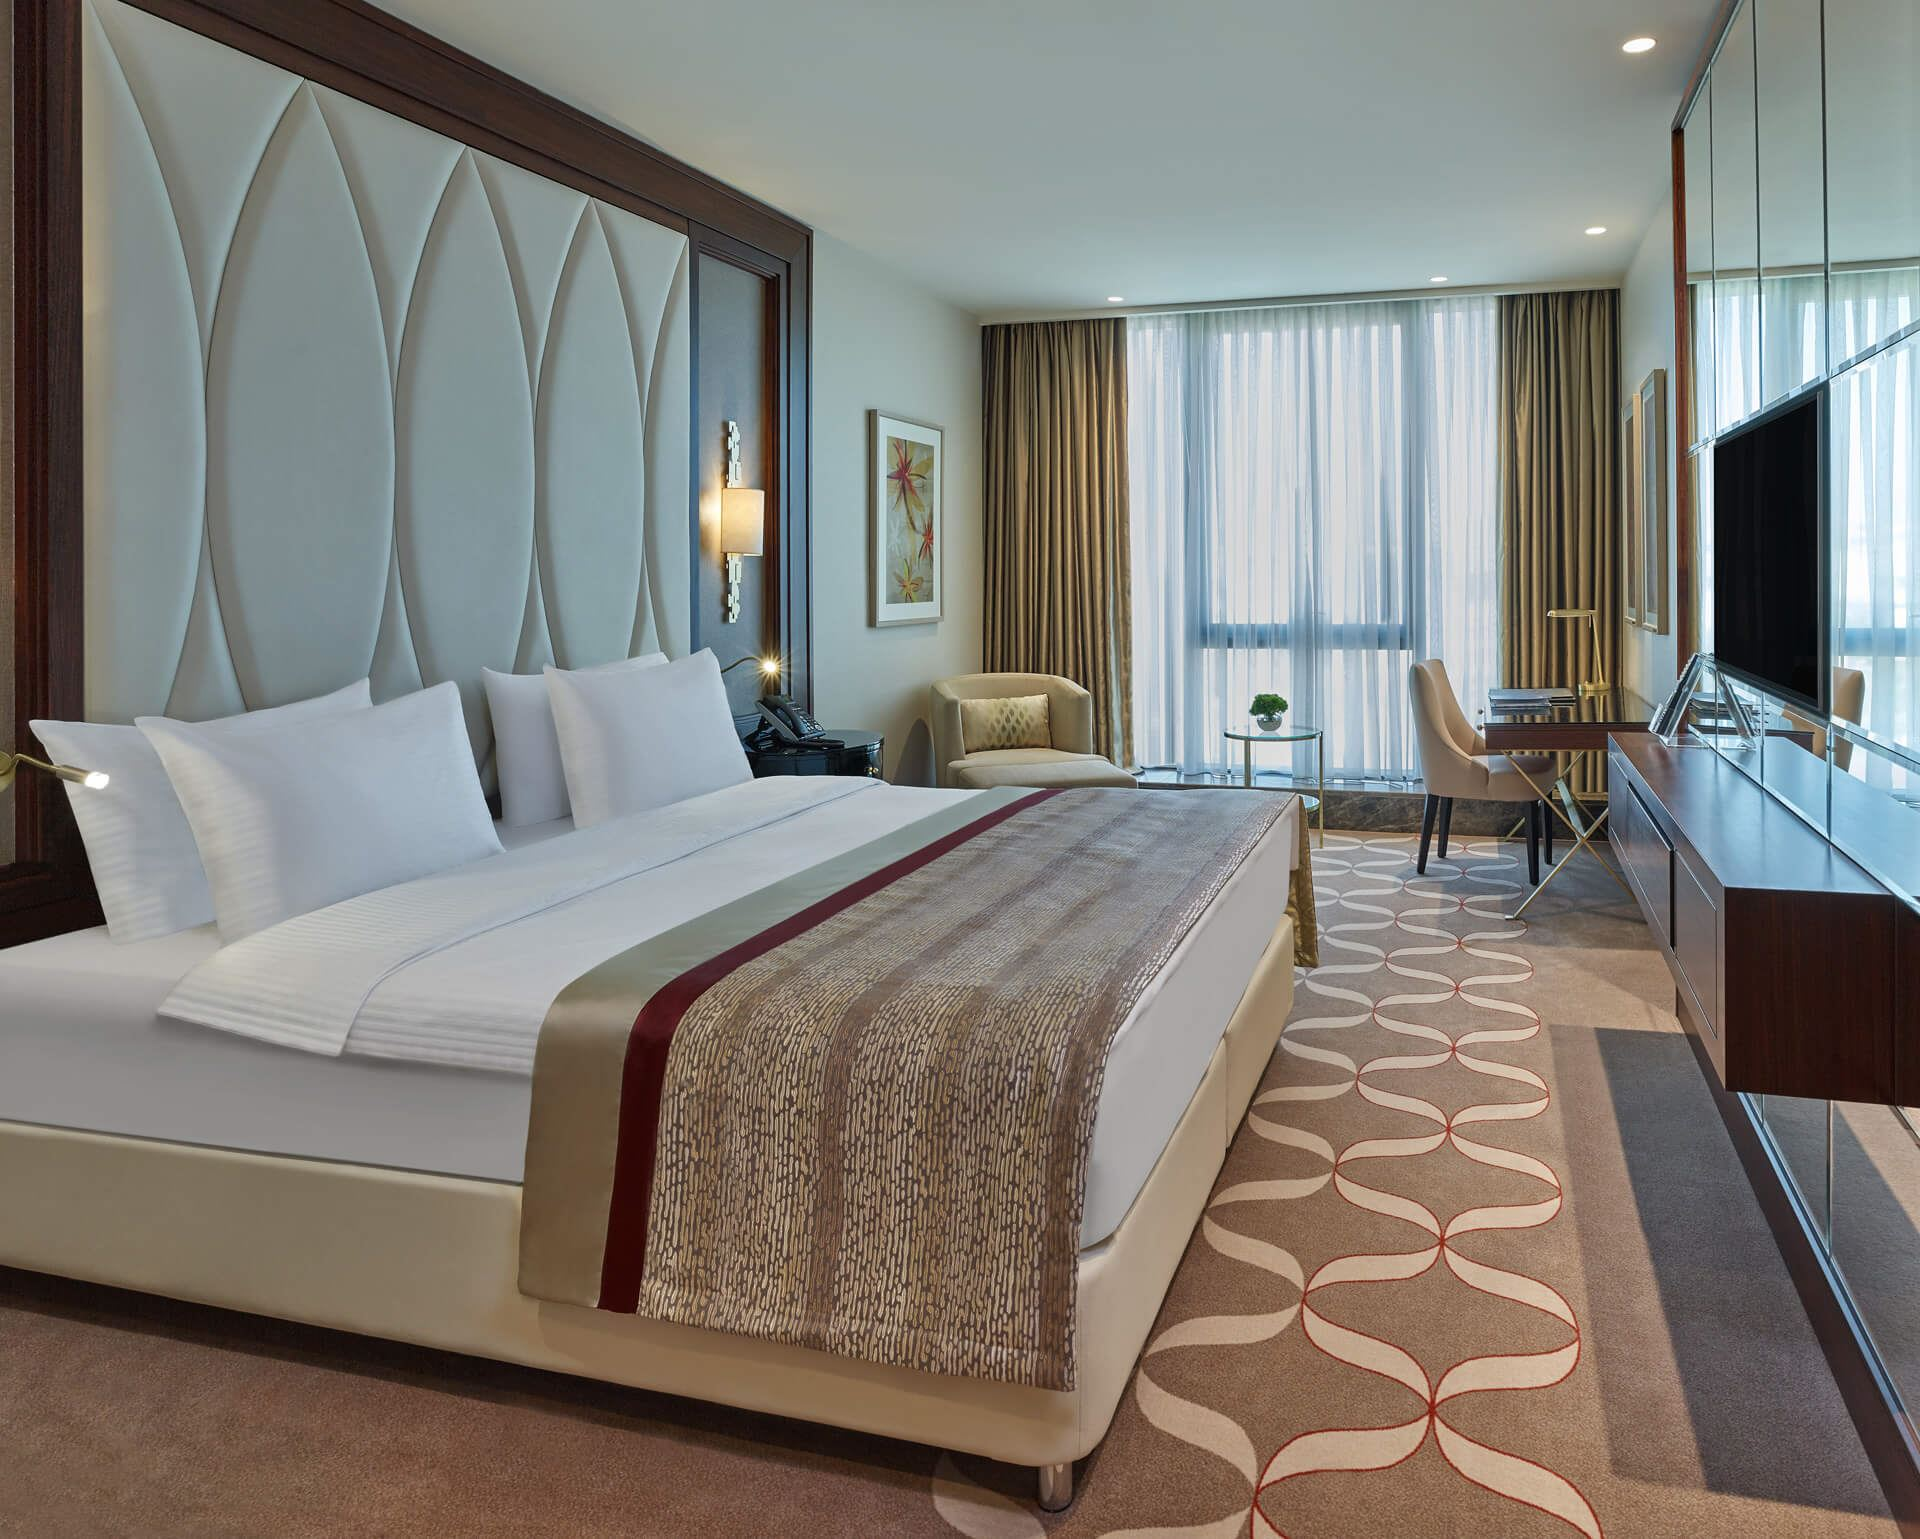 Hotel Bed Bug Attorney in Maryland